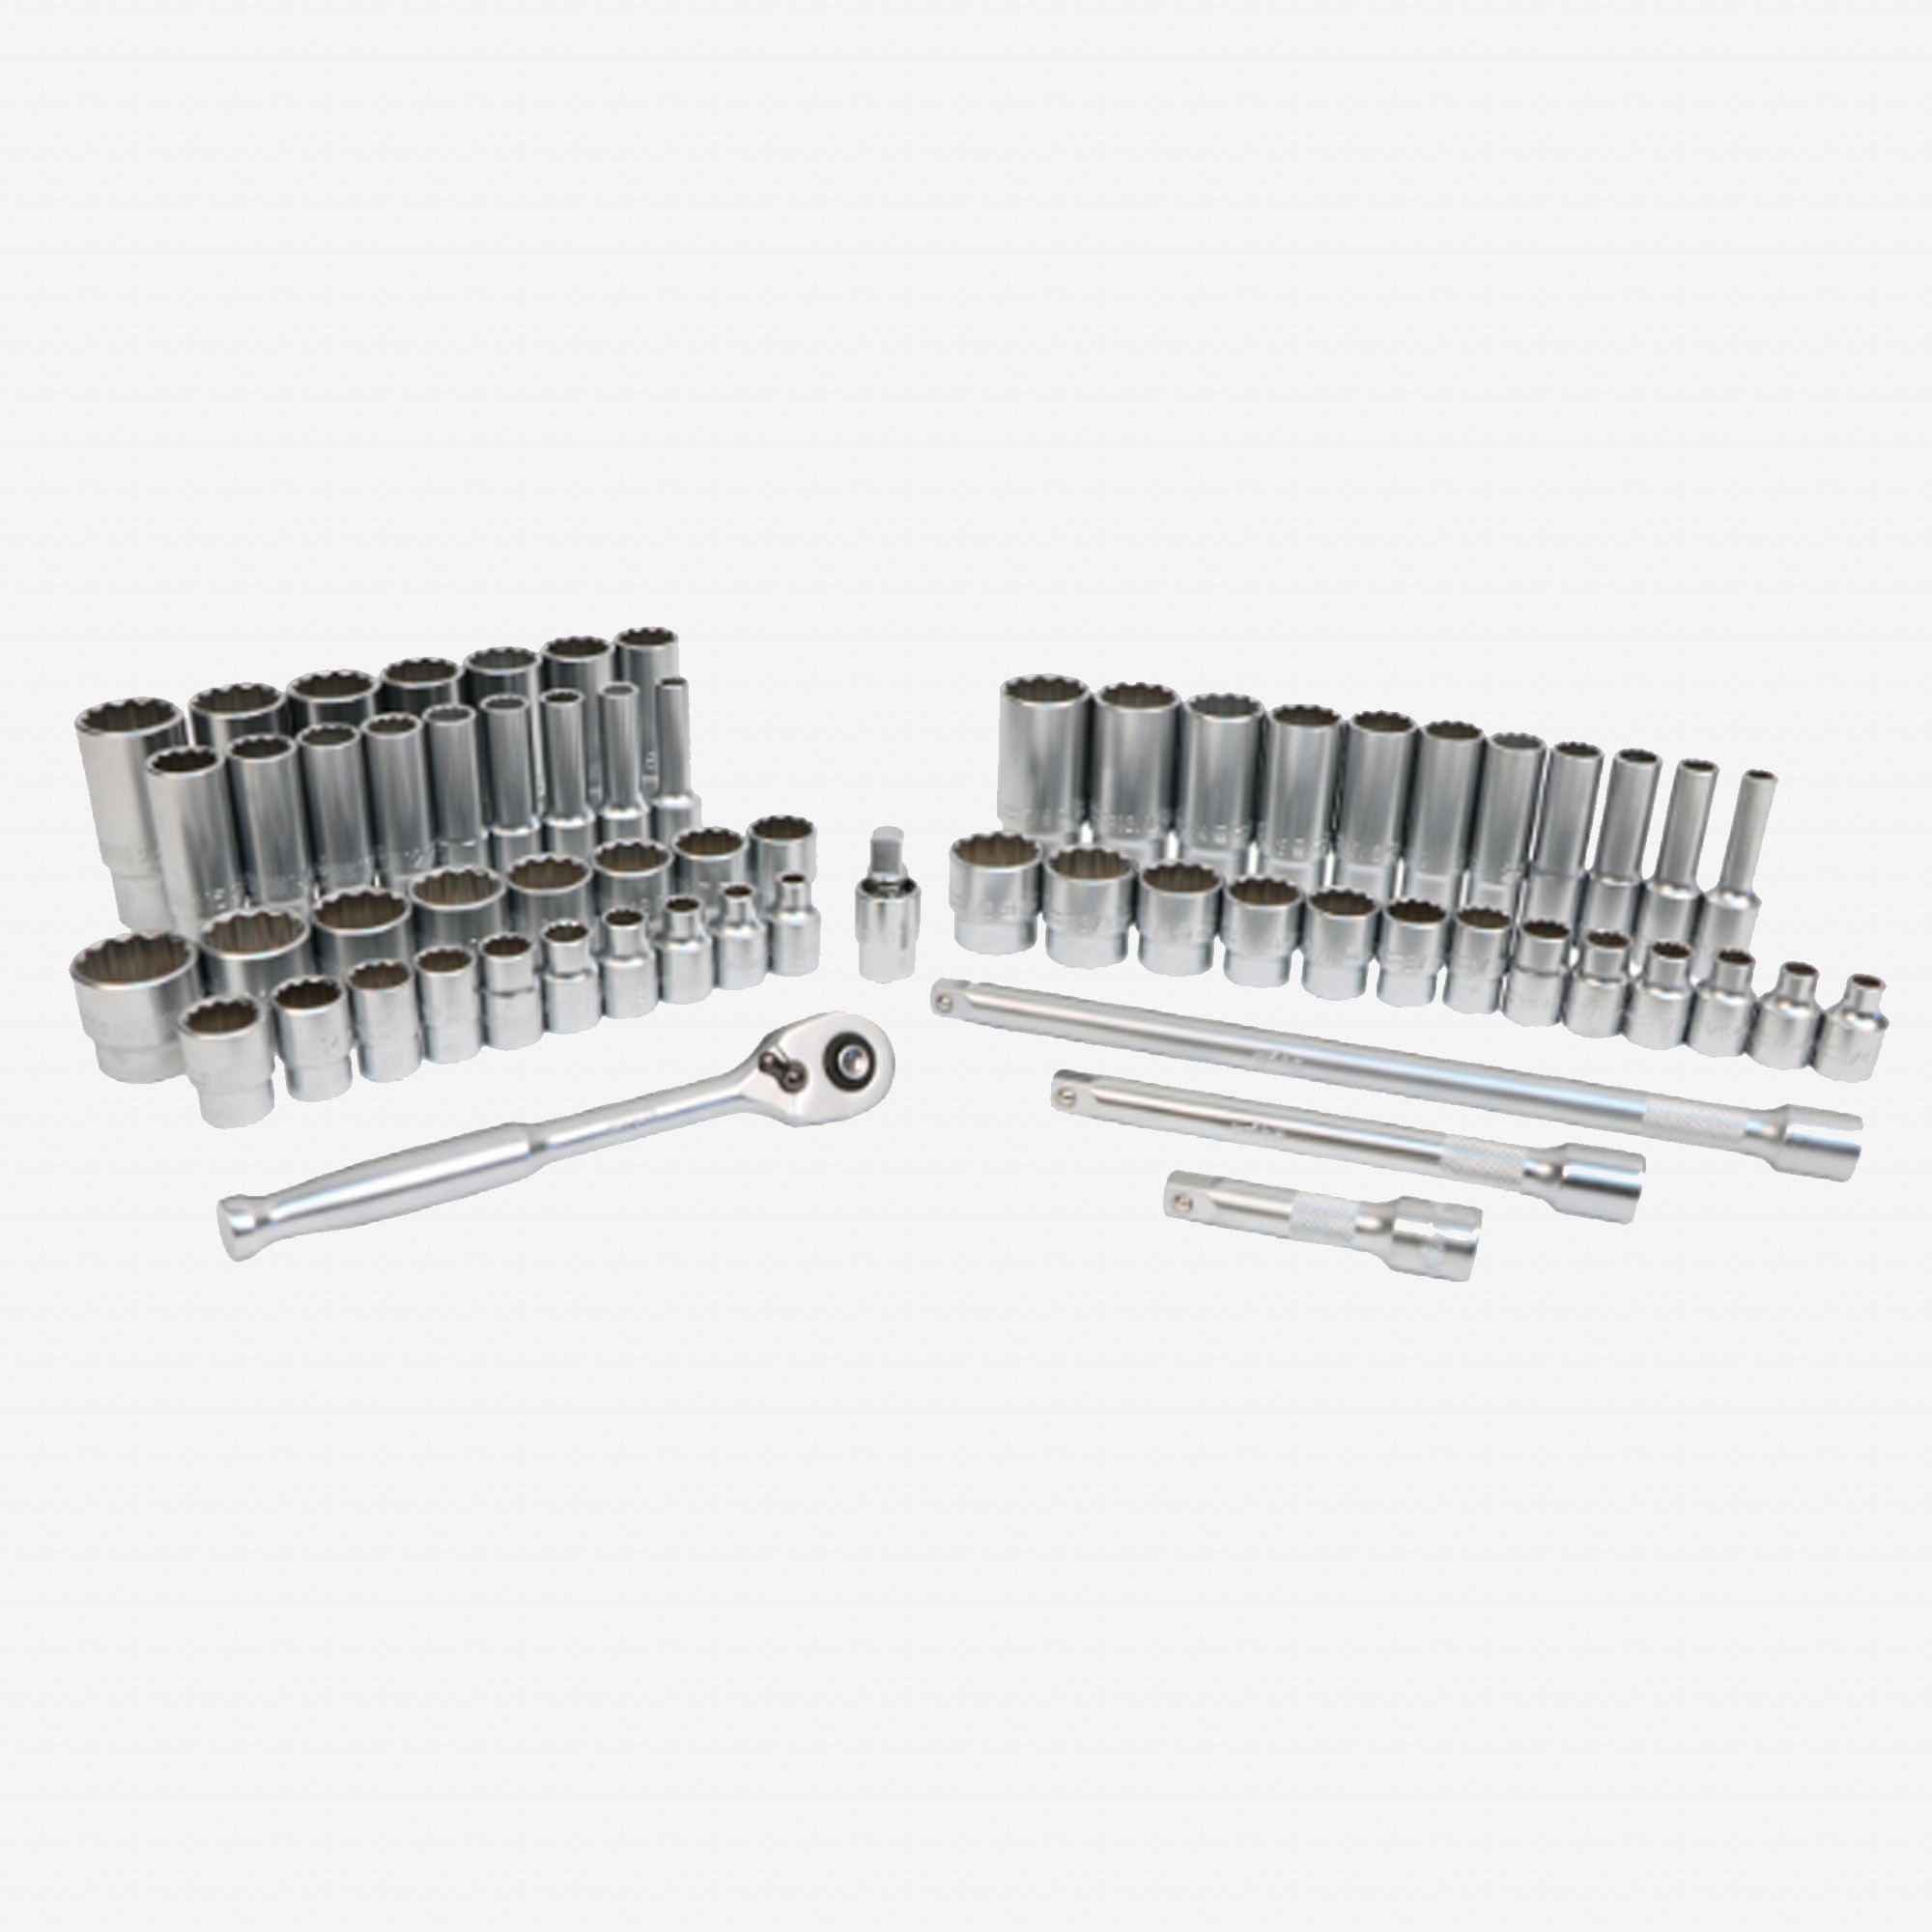 """Wiha 33799 Metric and SAE Socket Set, 12 Point 3/8"""" Drive with Ratchet & Extensions, 63 Pieces (33799)"""